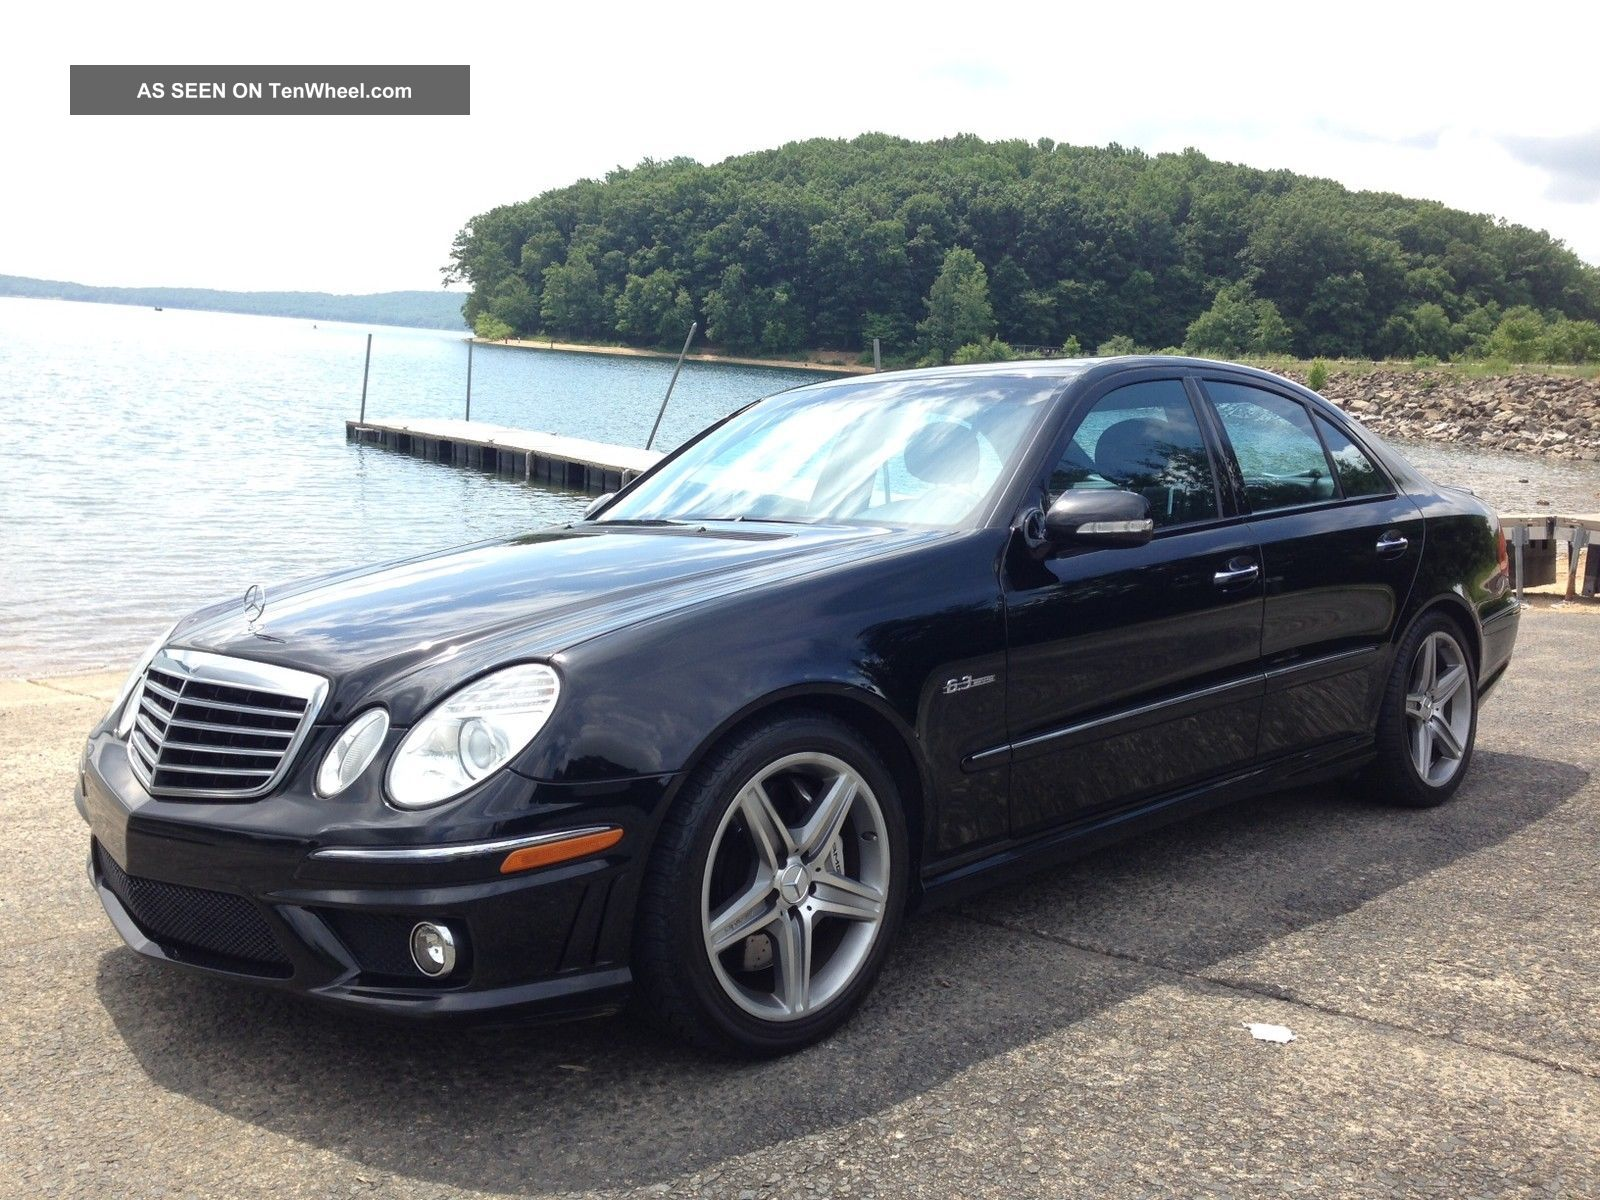 2008 Mercedes Benz E63 Amg Sedan Black / Black E-Class photo